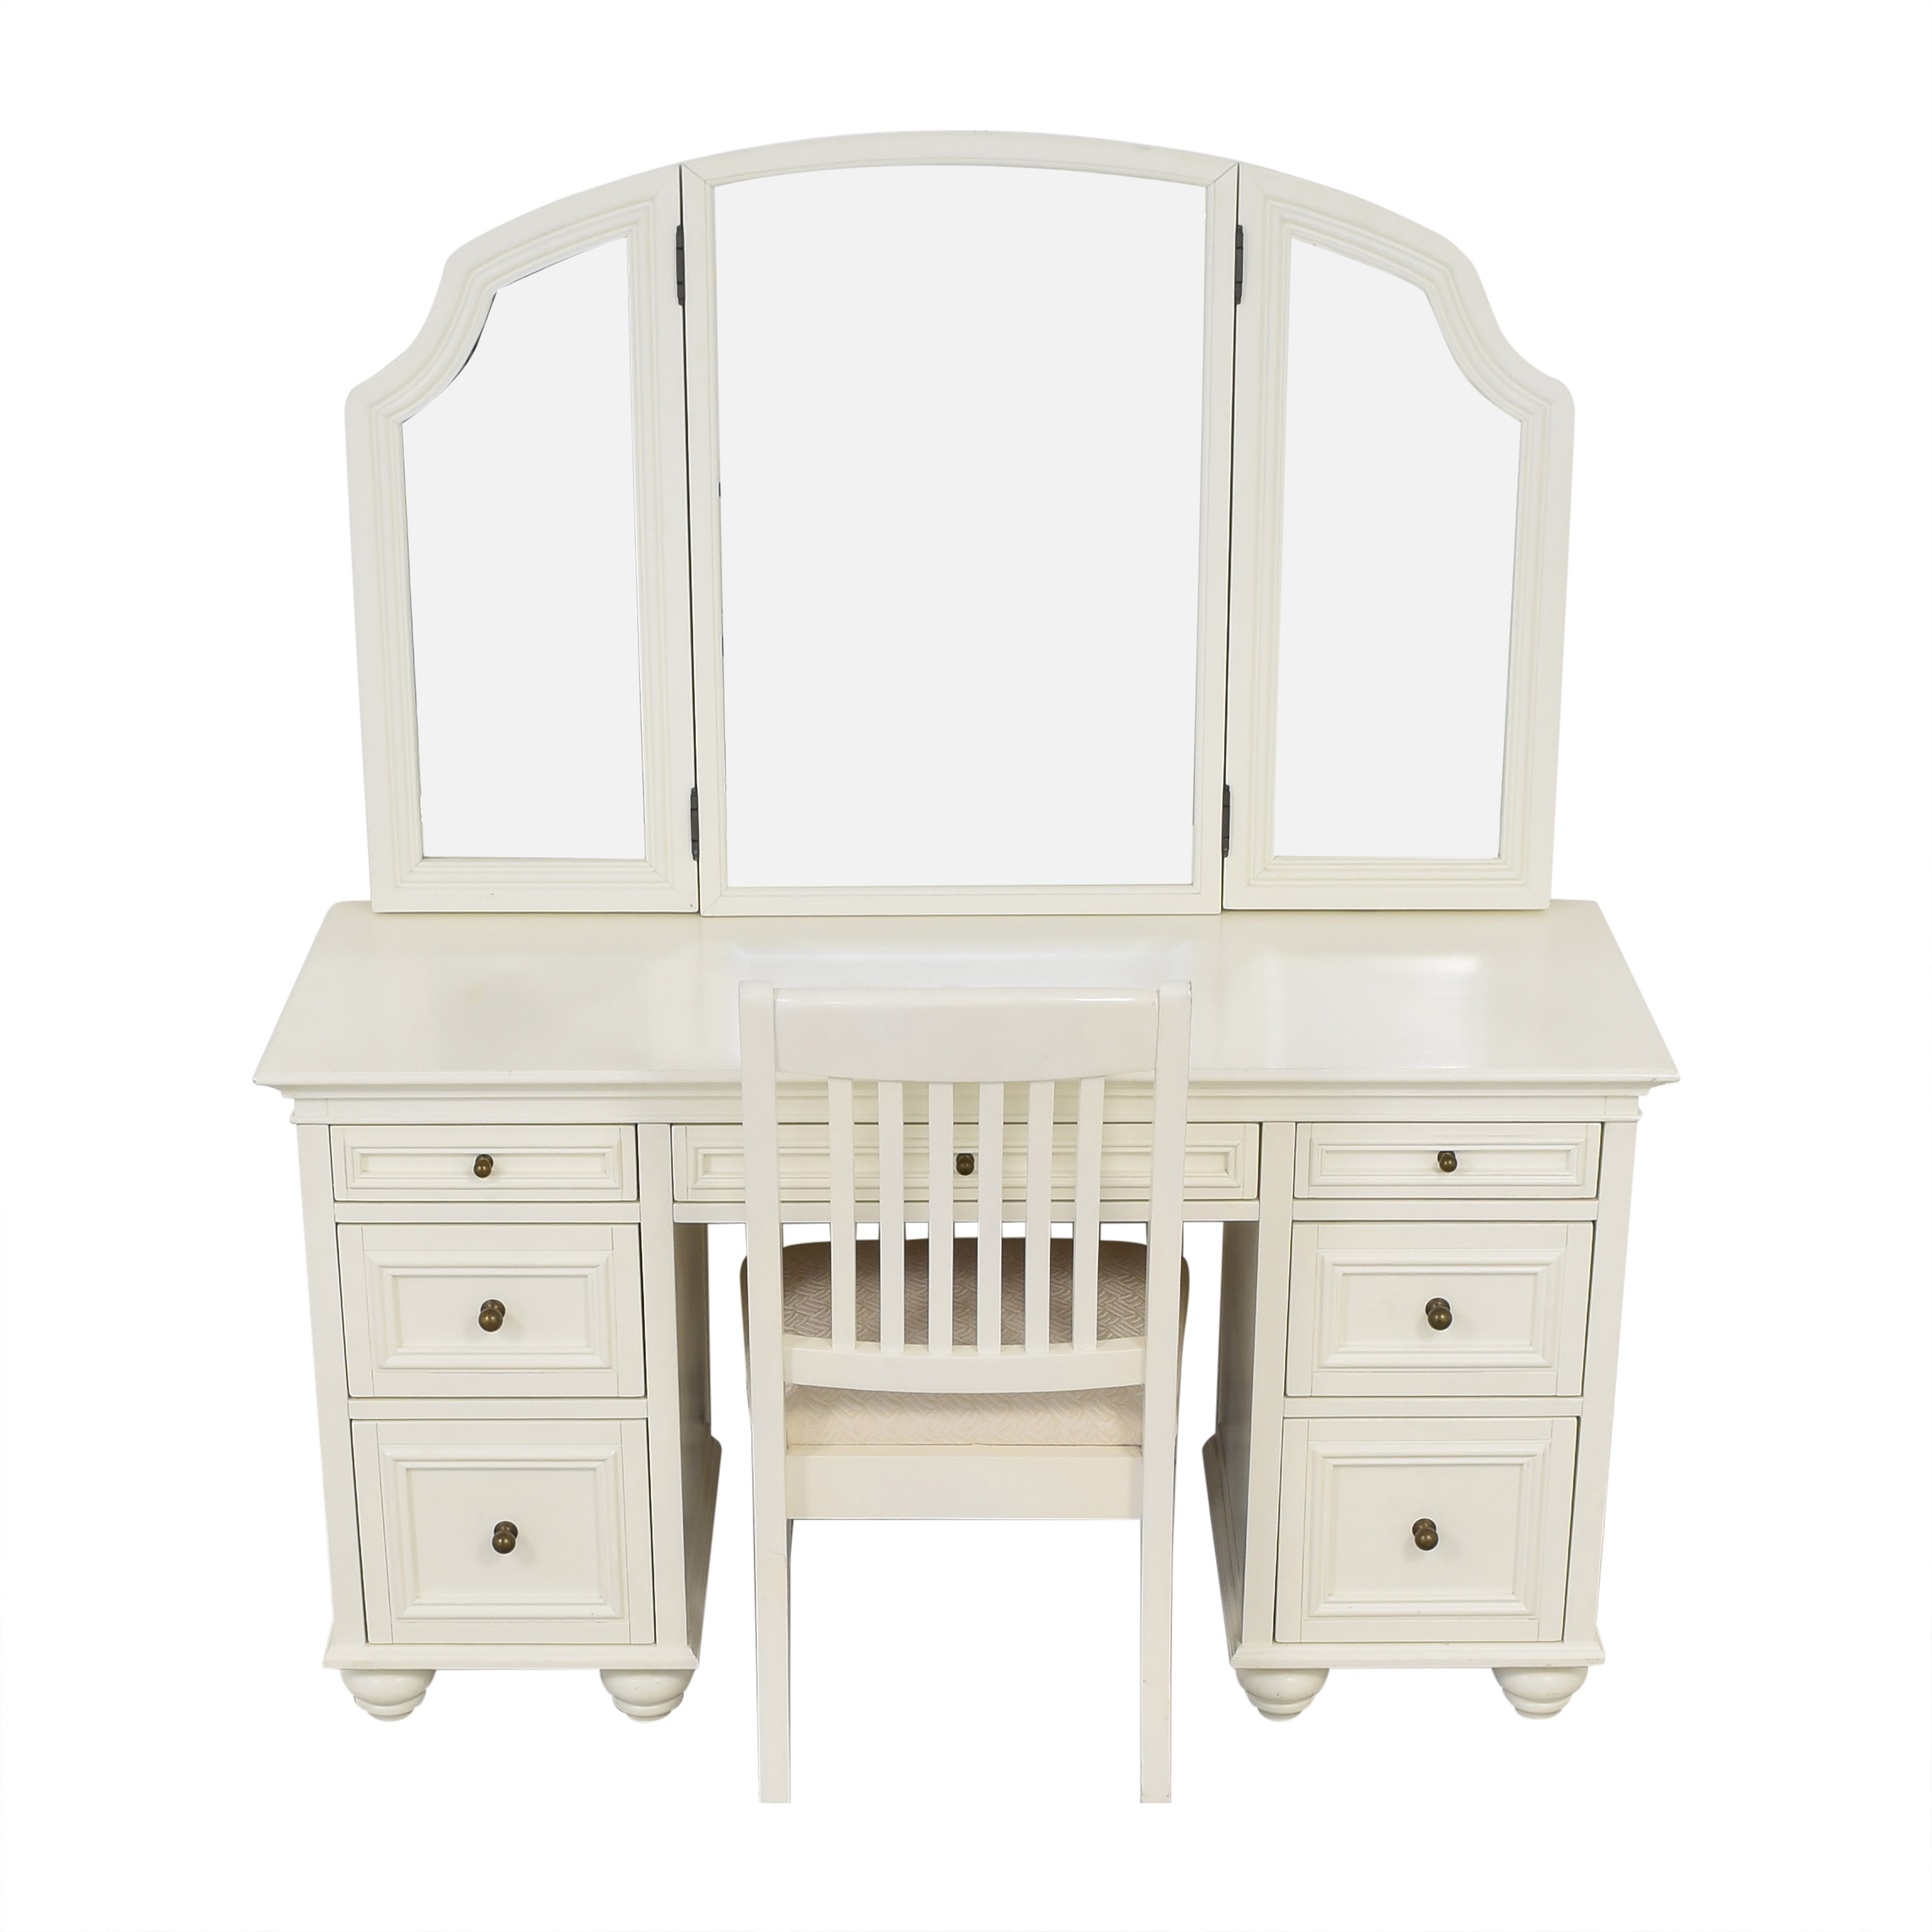 Pottery Barn Pottery Barn Chelsea Vanity Desk with Chair nyc